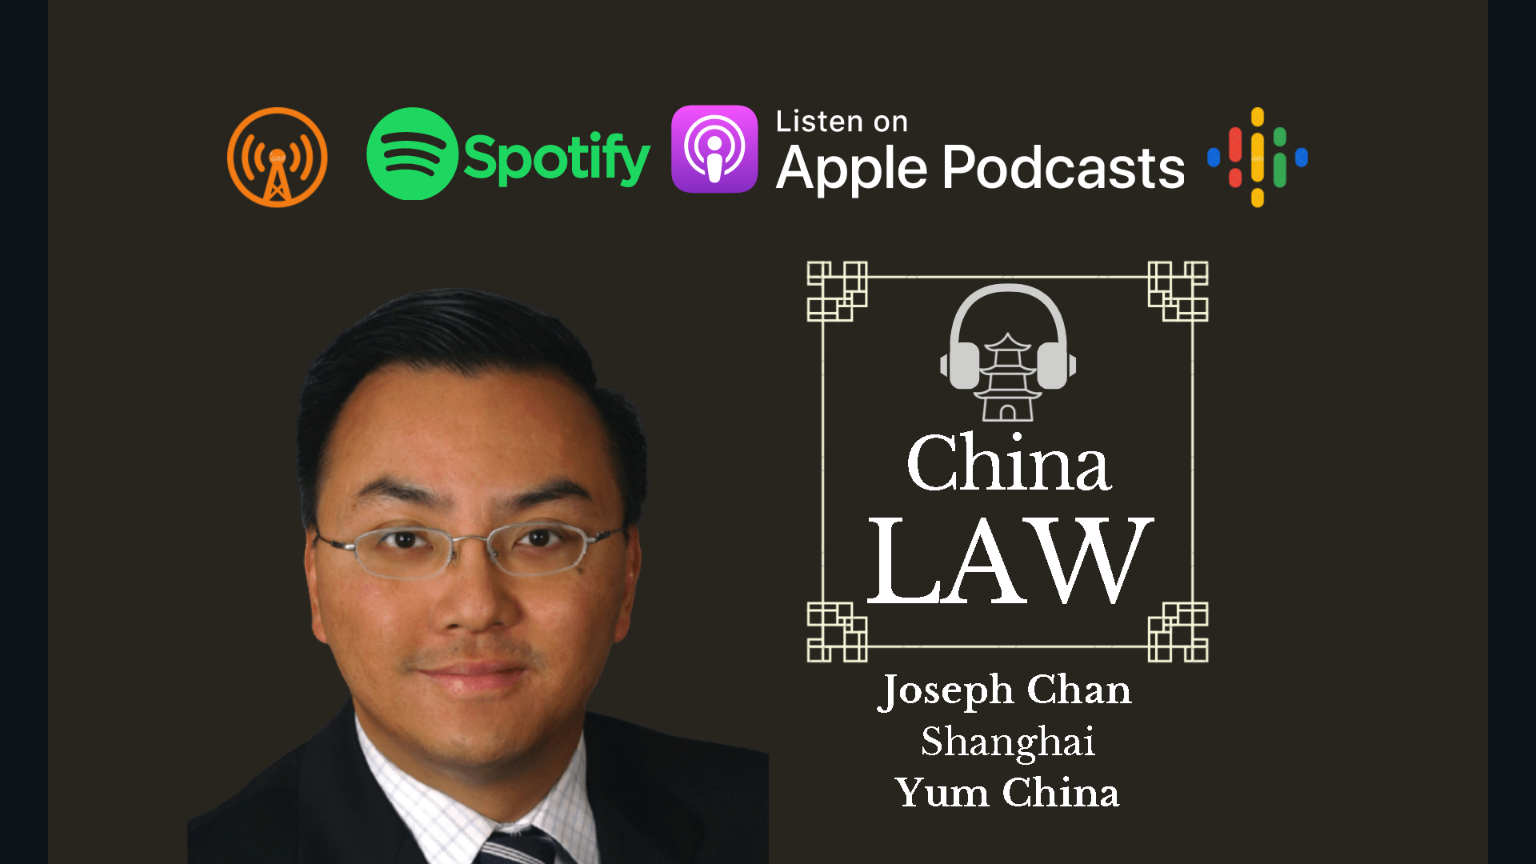 CLP Podcast #32: Yum China's Secondary Listing in Hong Kong - Joseph Chan, Yum China